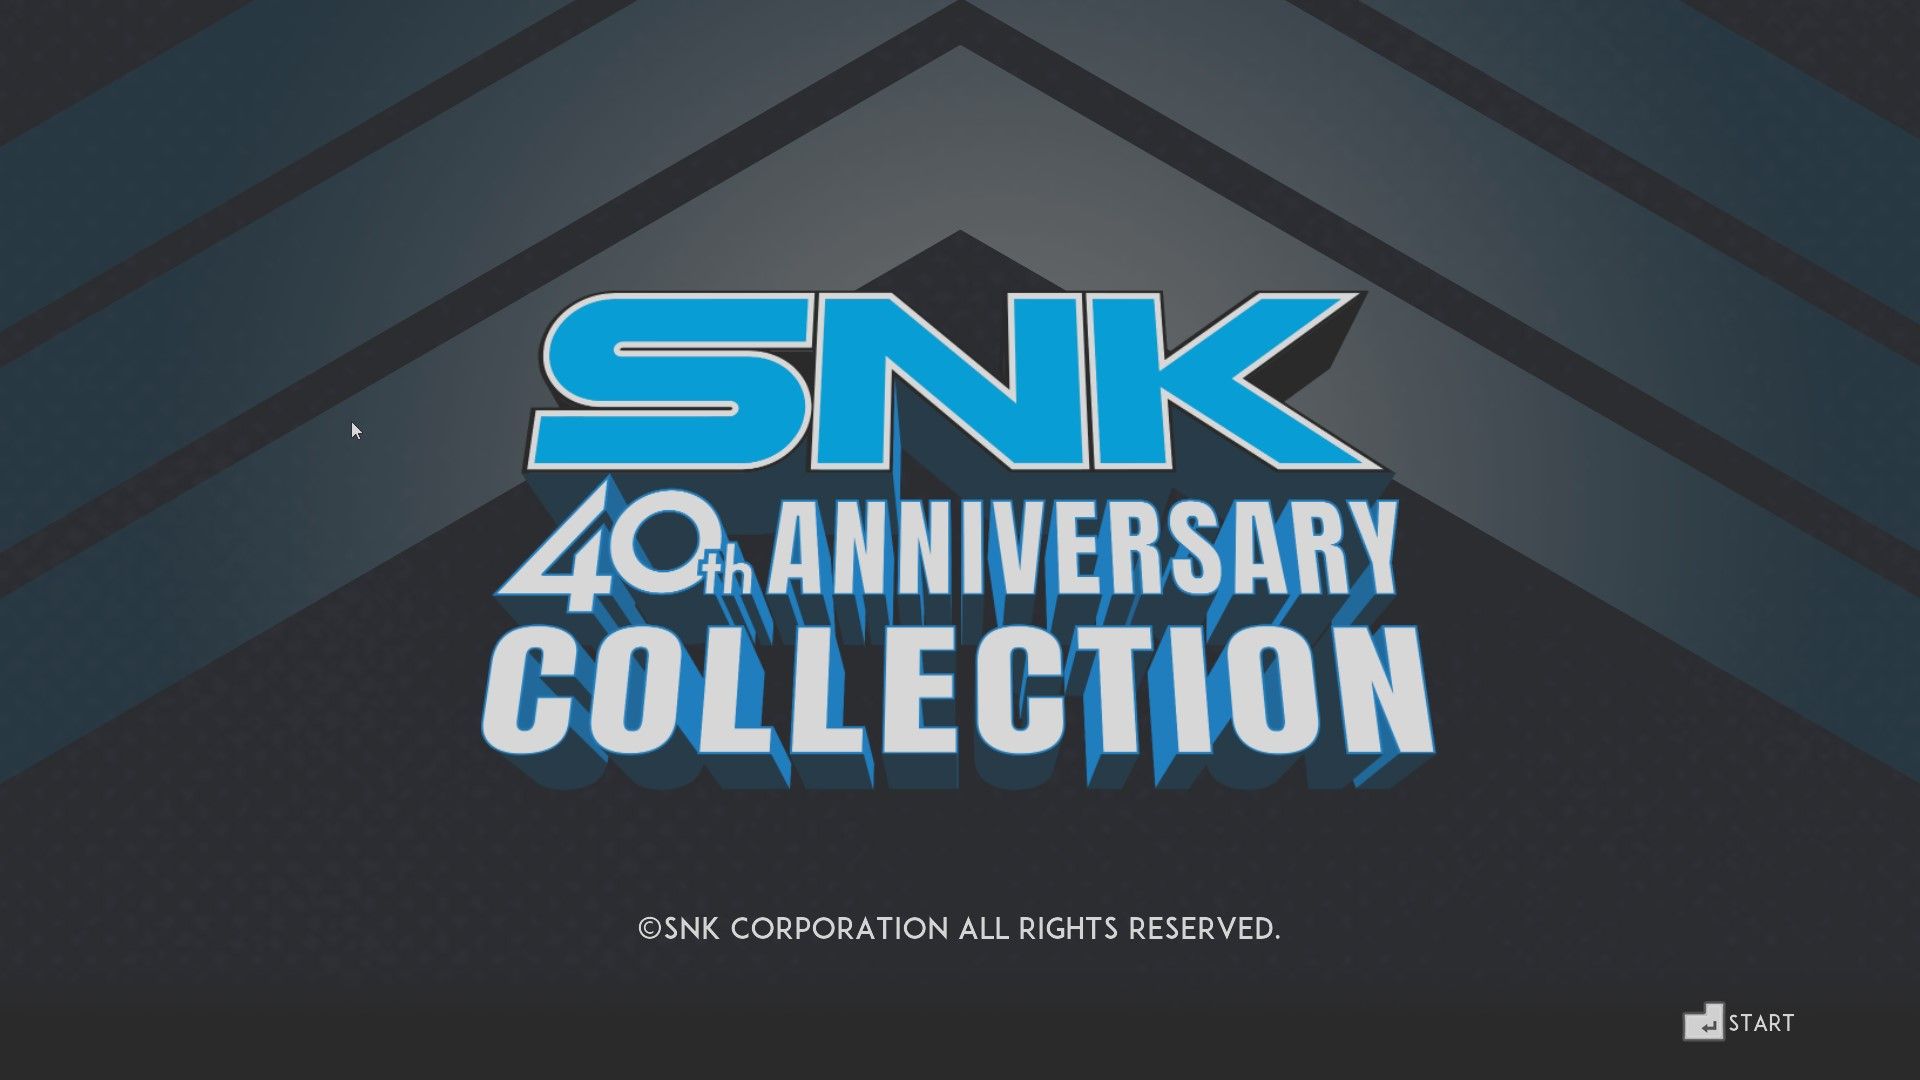 SNK 40th Anniversary Collection: Guerrilla War [Arcade] 13,700 points